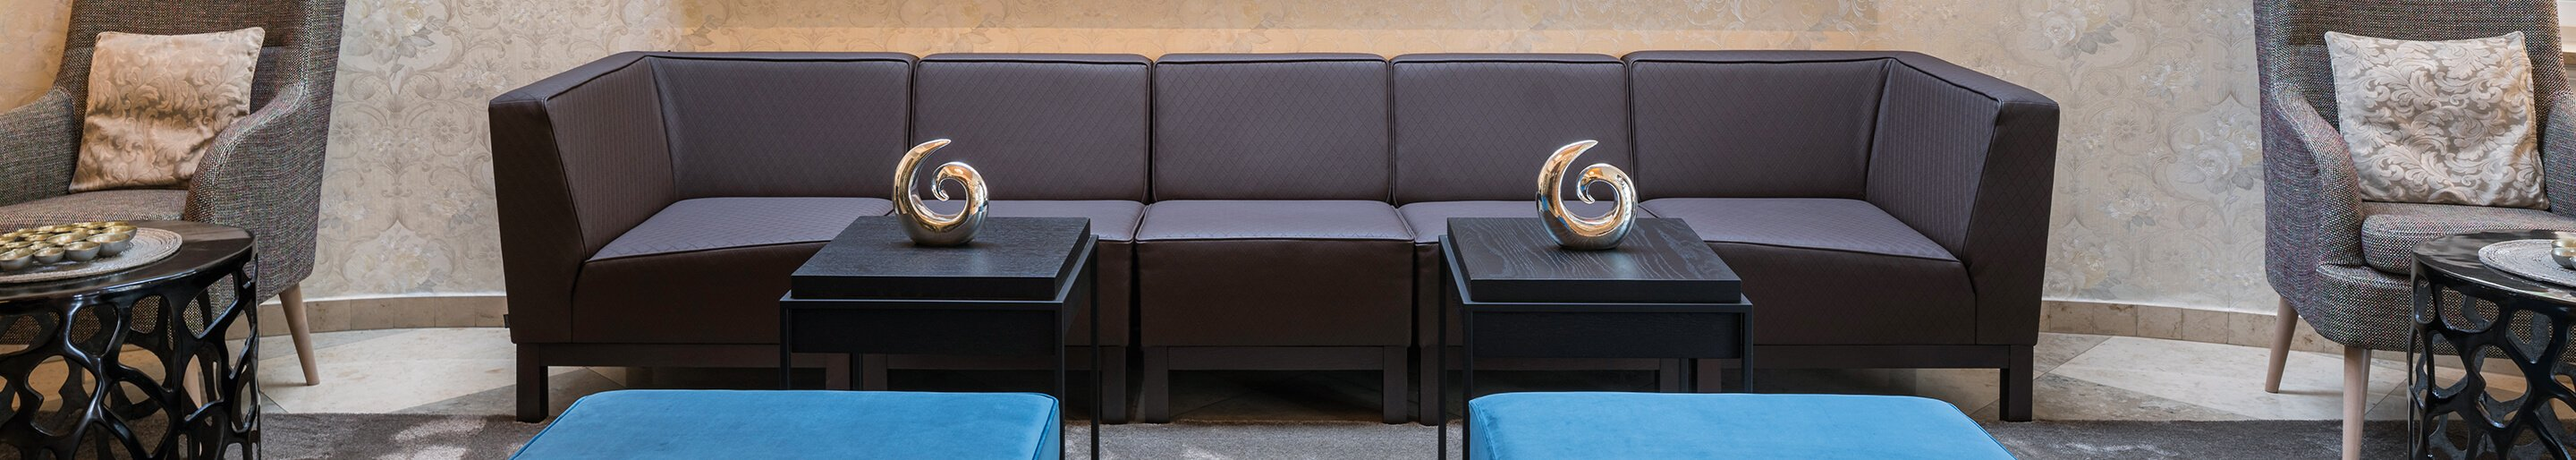 Indoor Lounge furniture for your restaurant or hotel